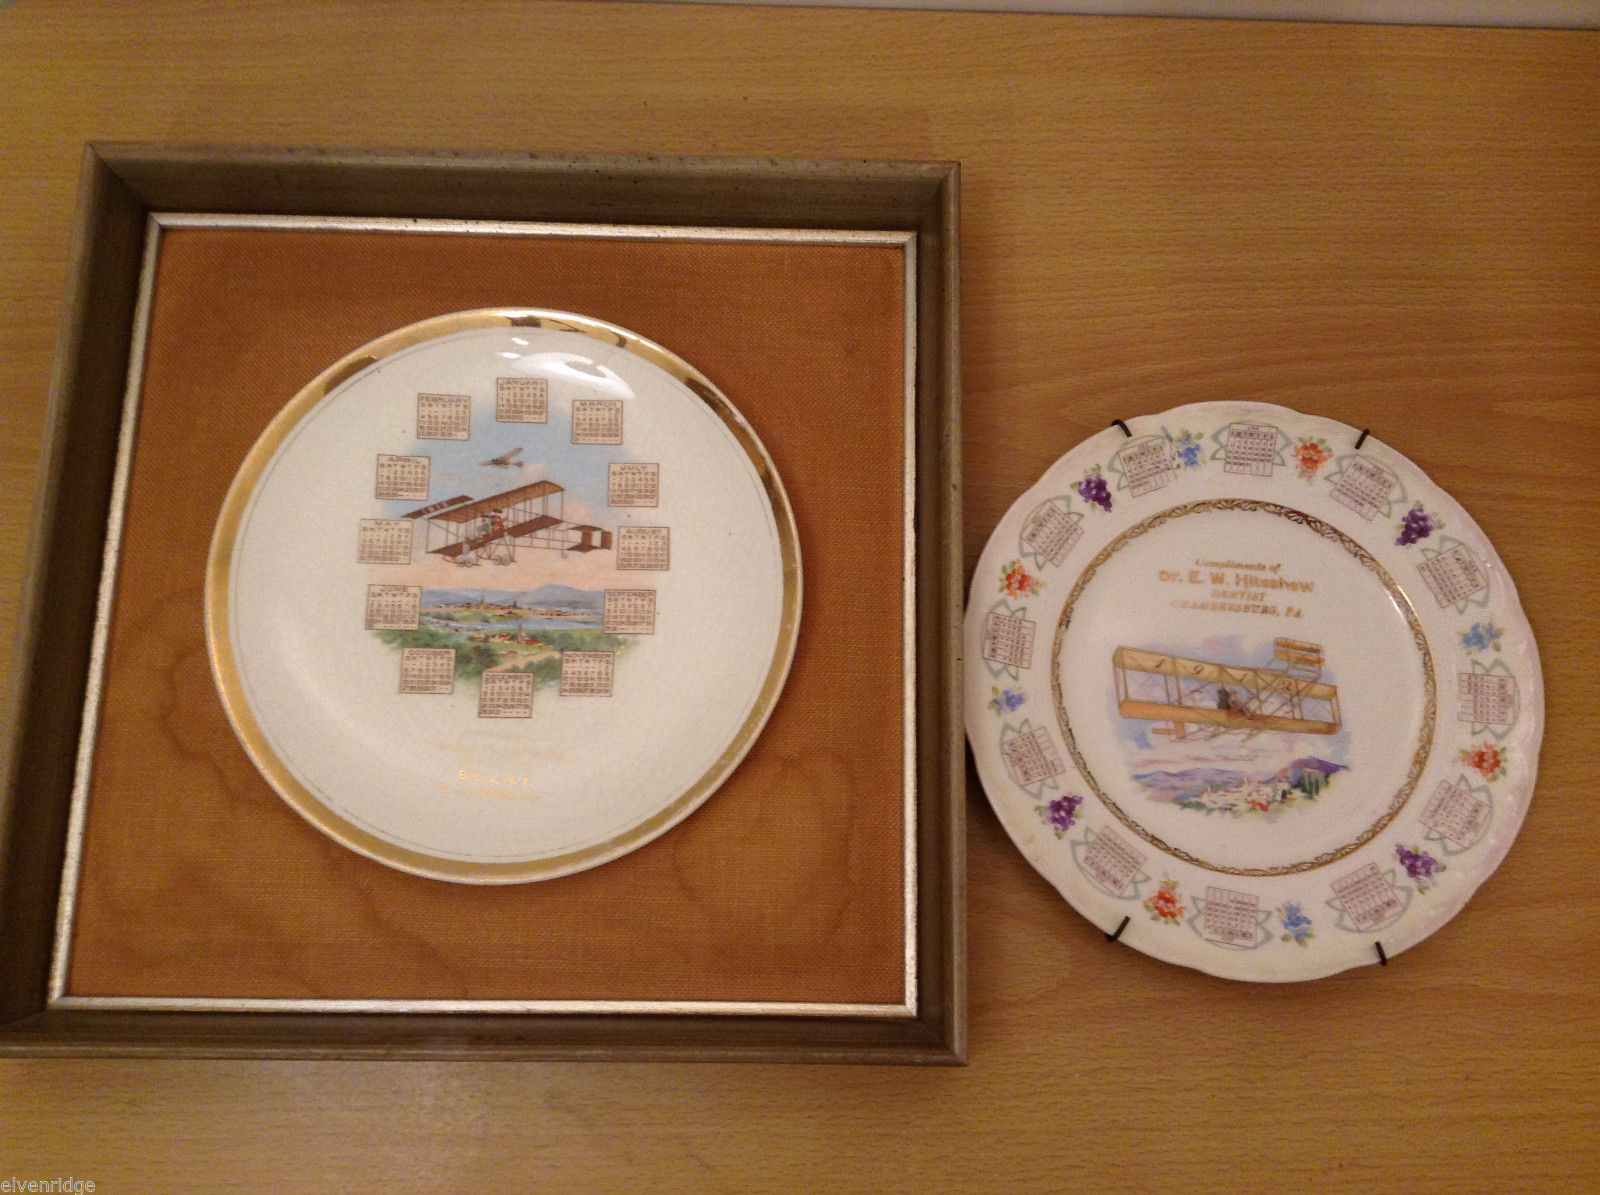 Antique 1912 Calendar Plates Pioneers of Aviation Theme Set of 2, China